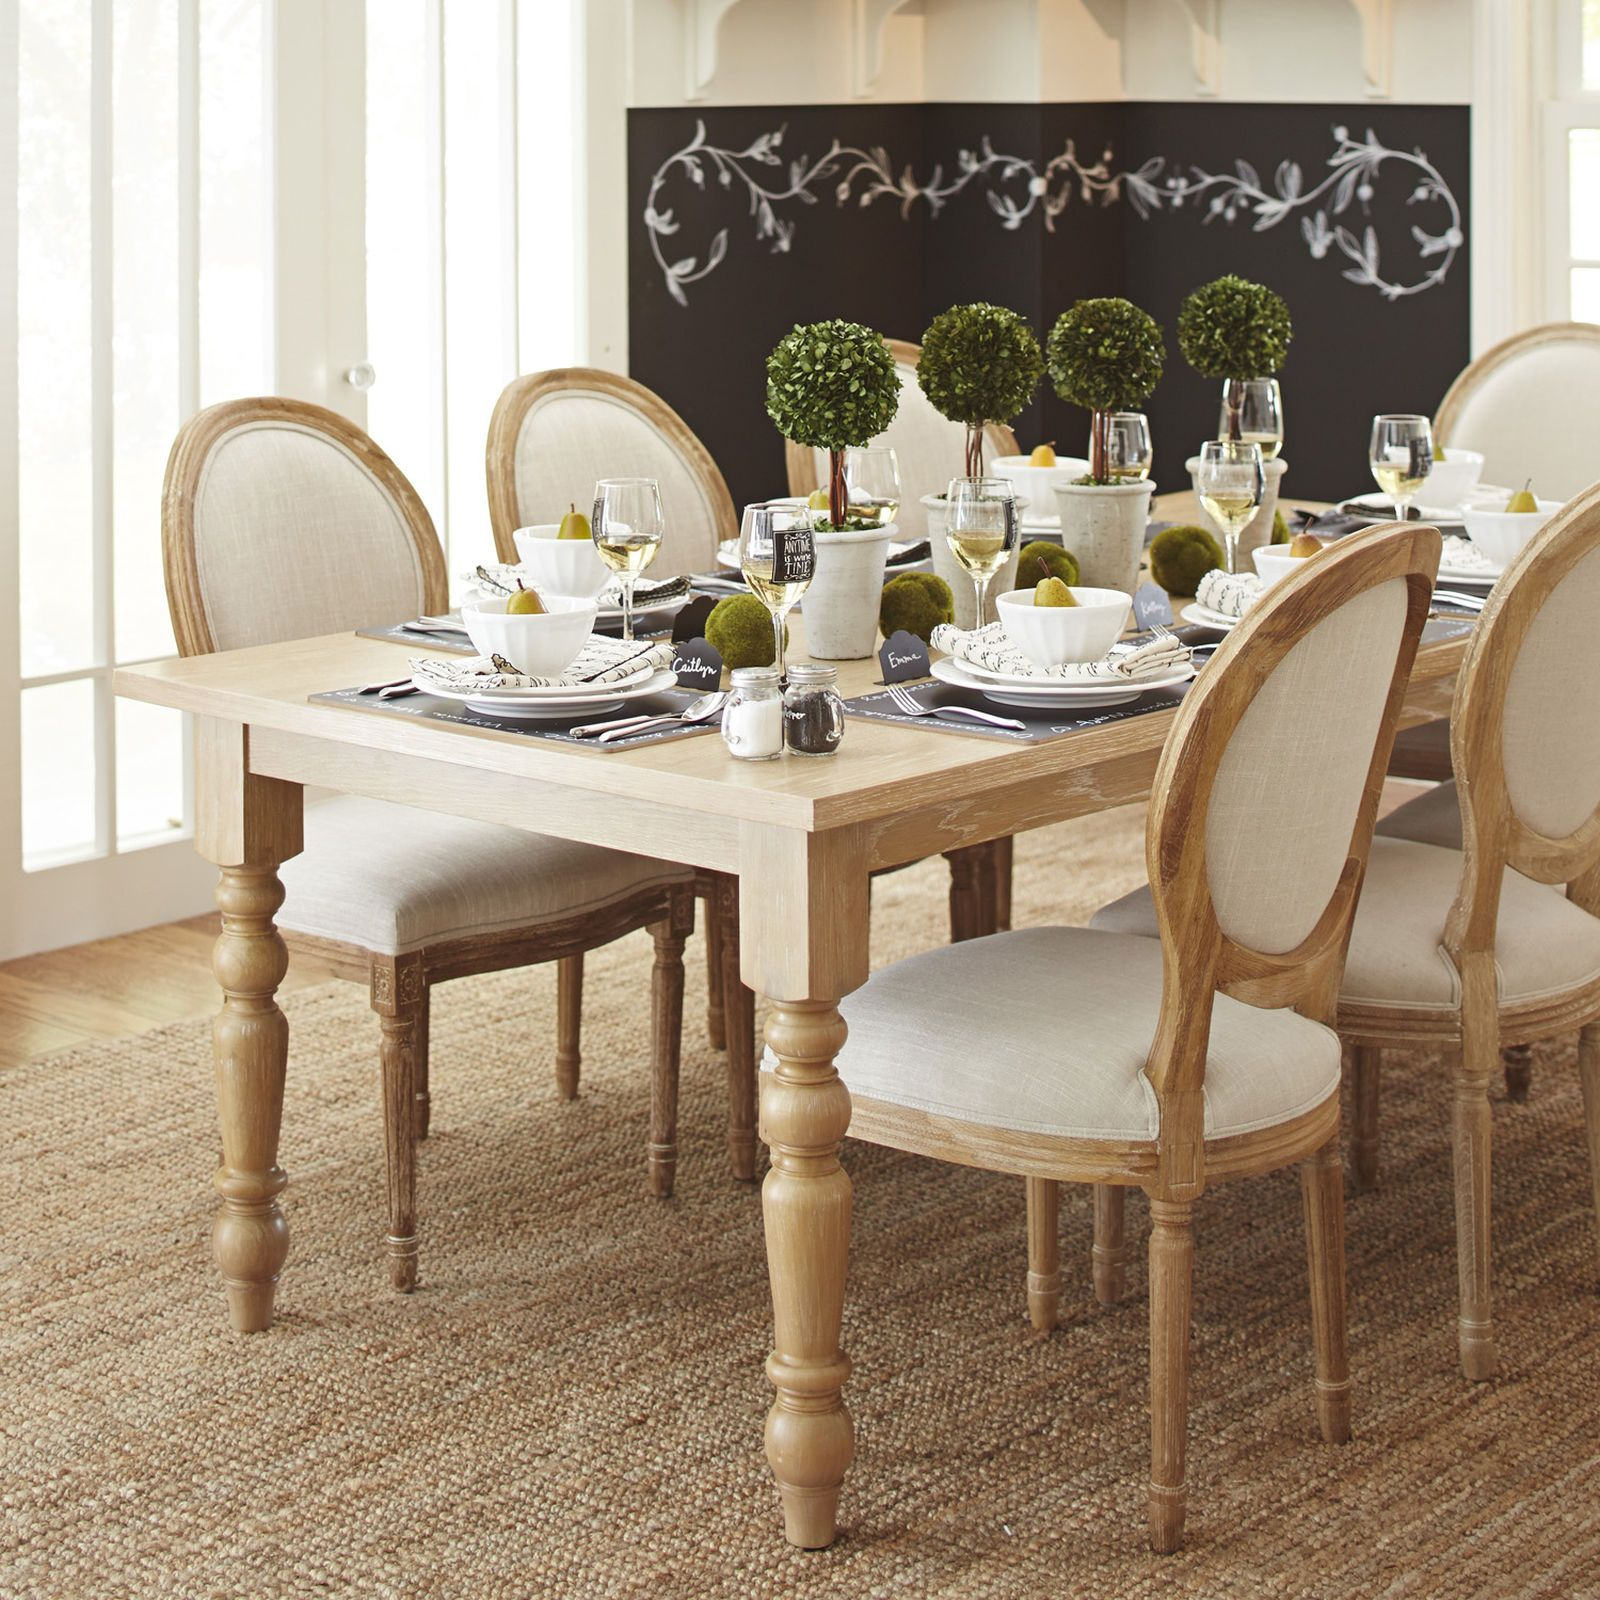 French Country Dining Set Natural Whitewash French Country Dining Set Country Dining French Country Dining